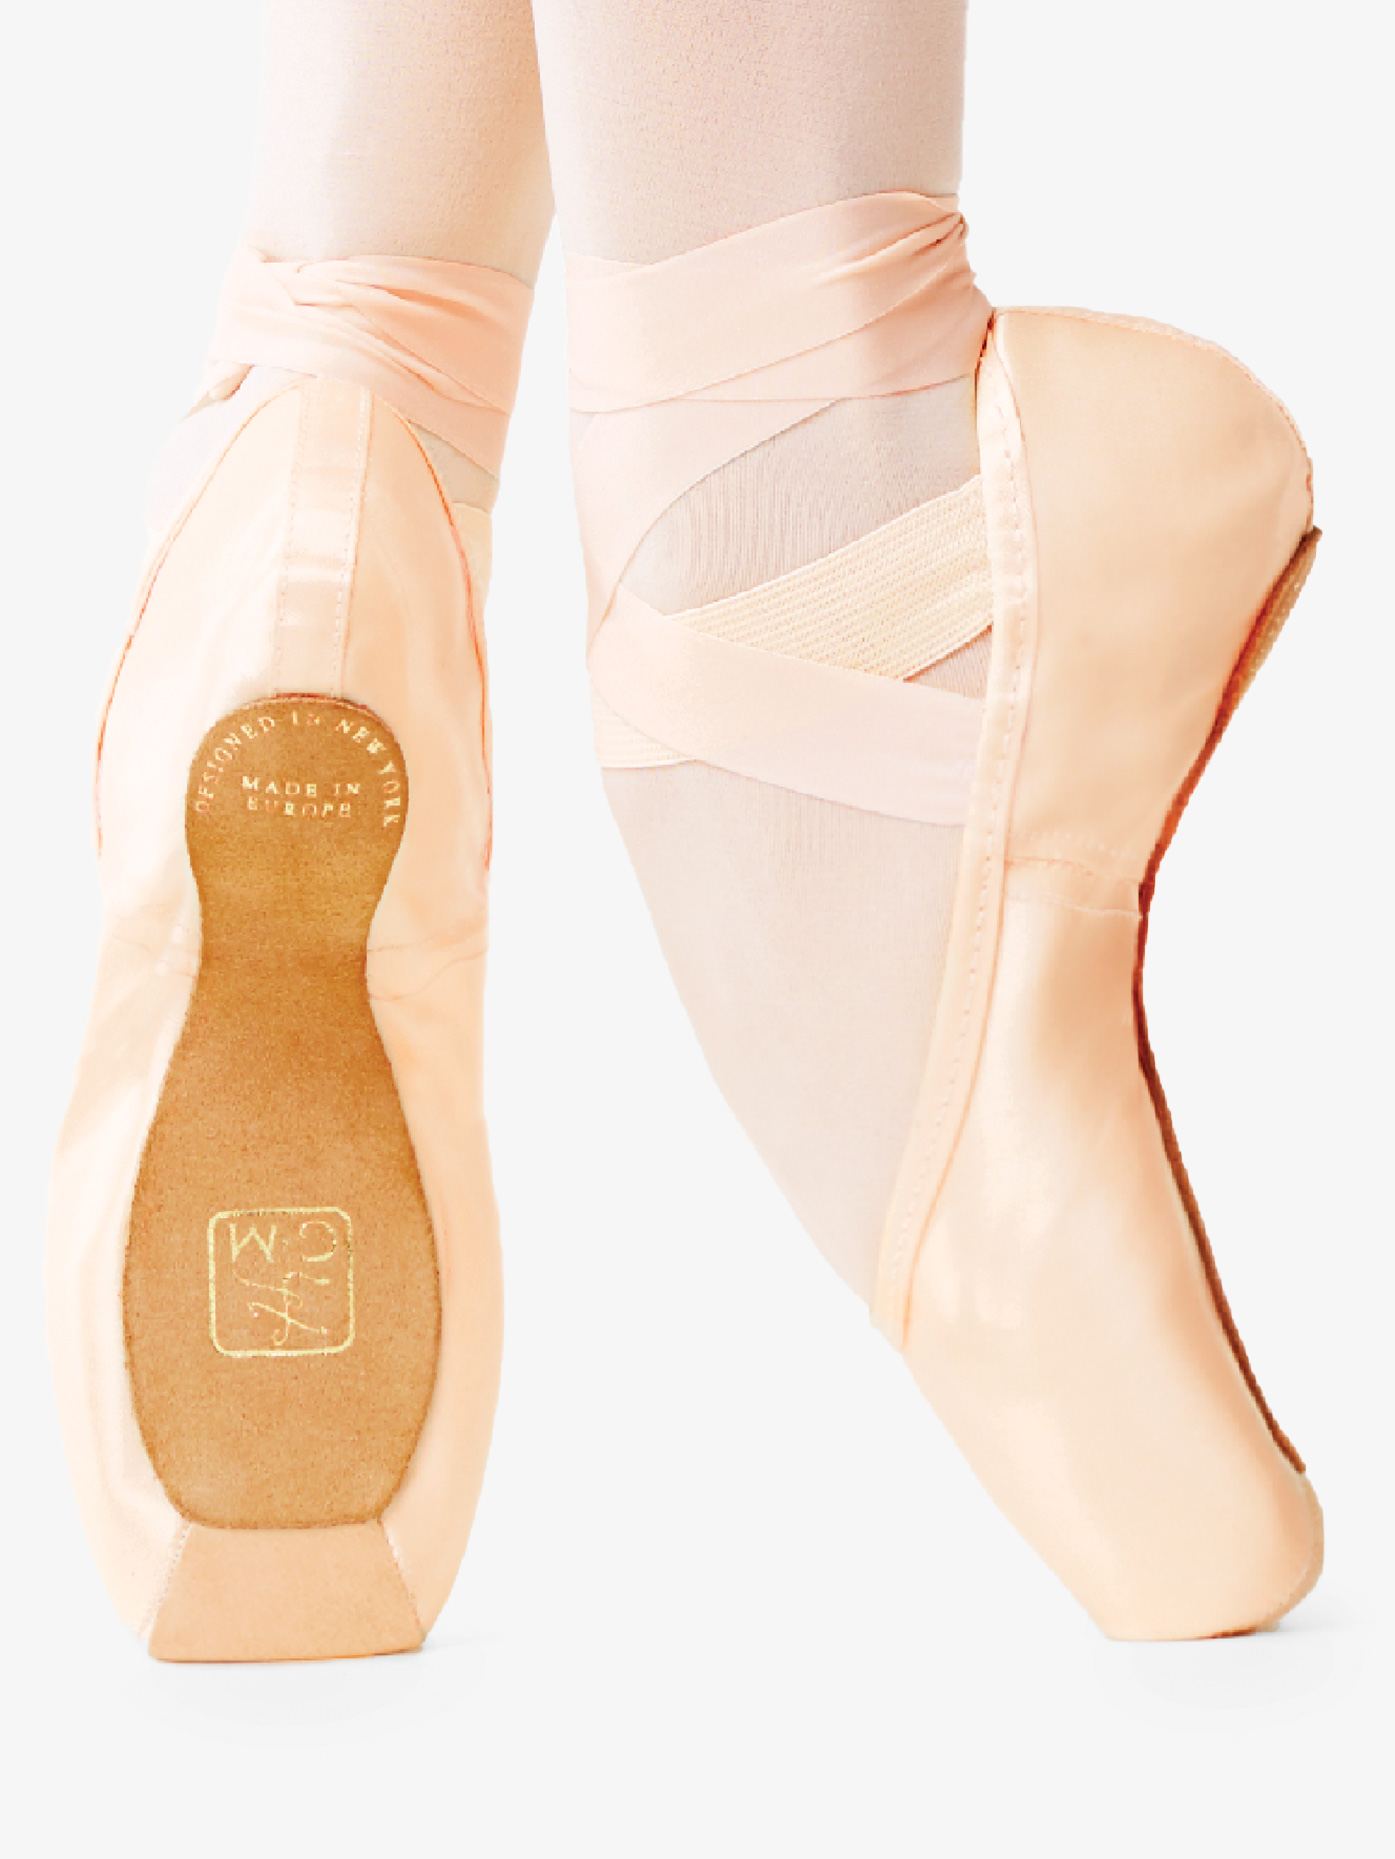 96af876715a6 Pointe Shoes - Pointe Shoes